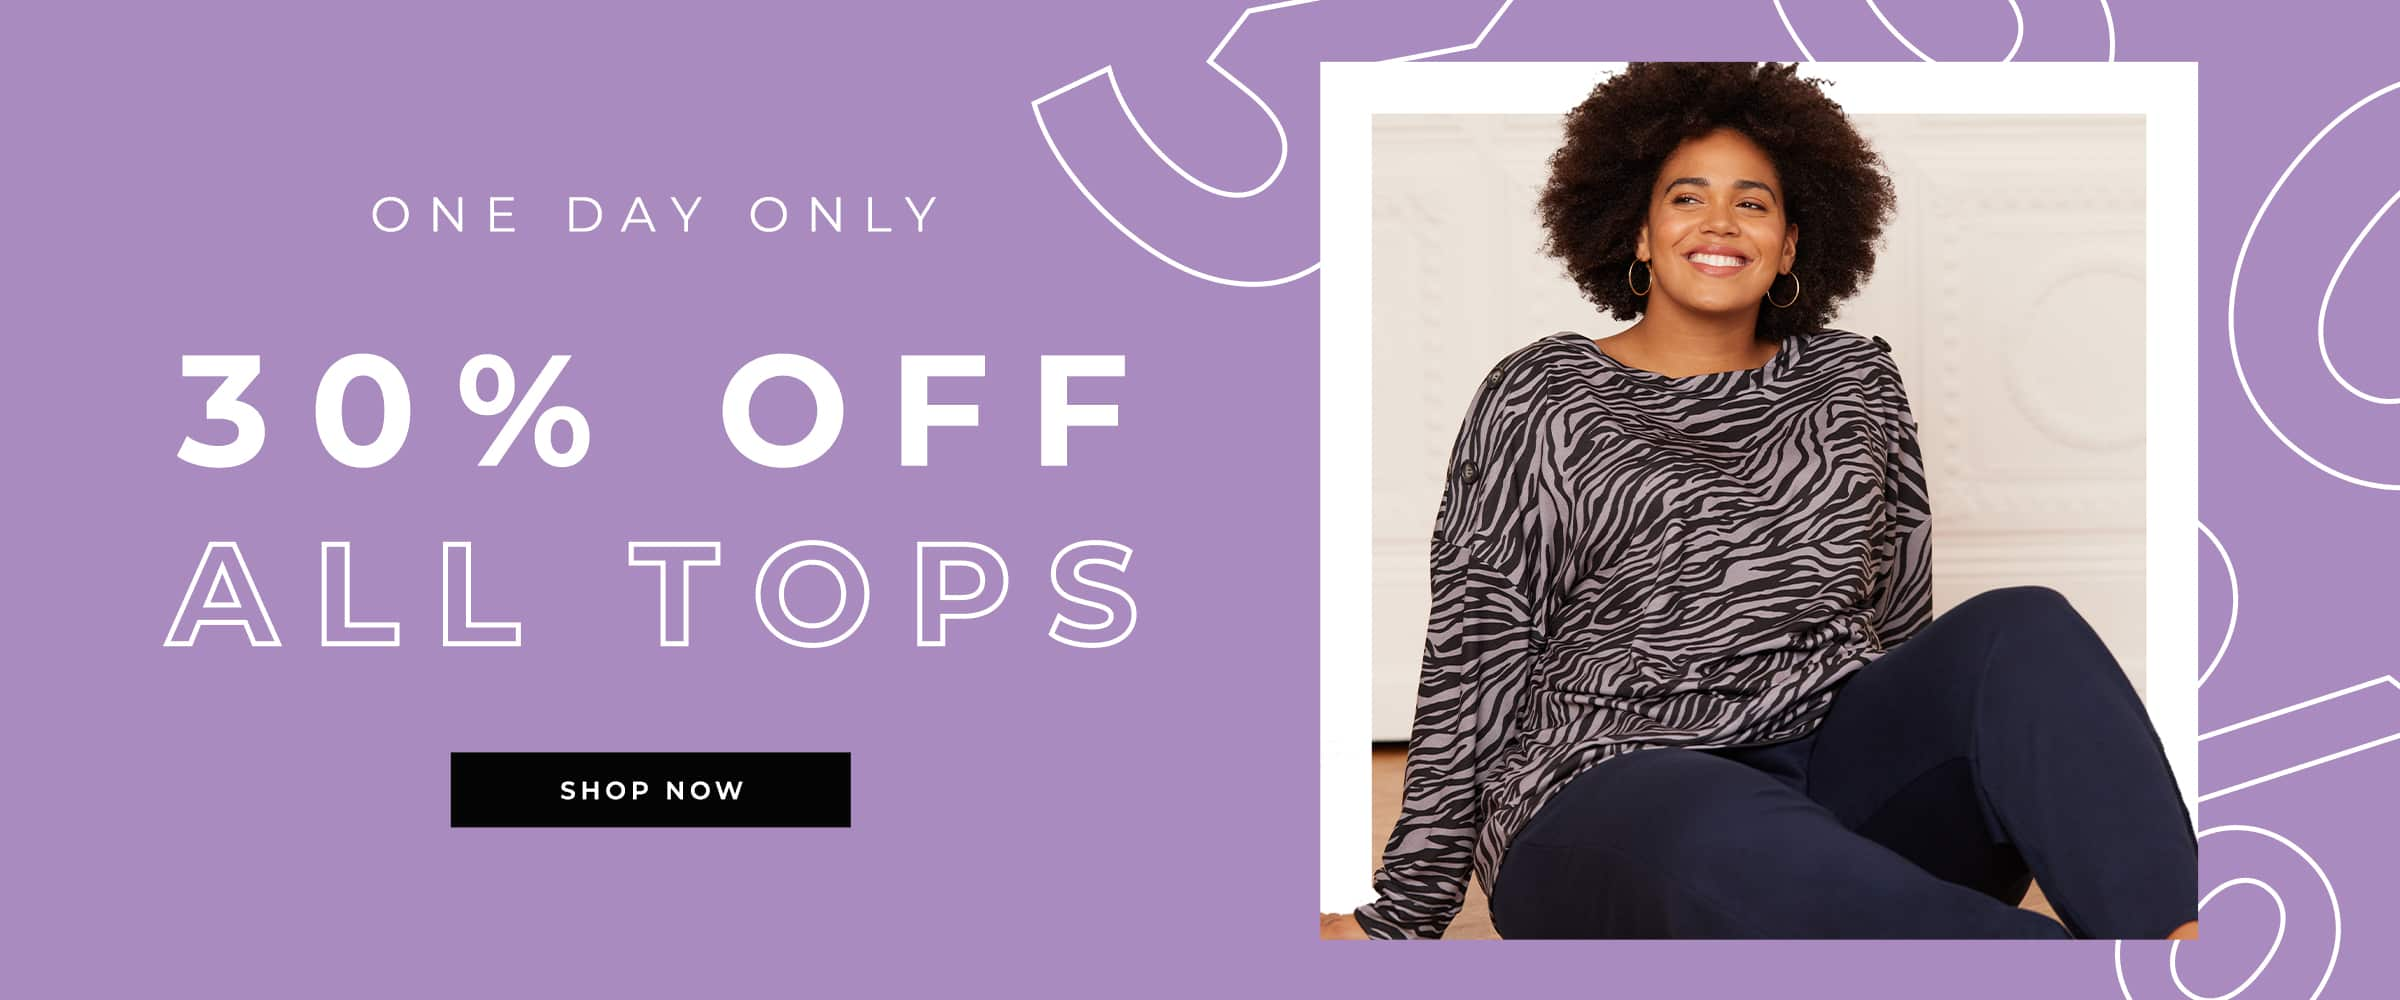 Evans Clothing: 30% off plus size ladies tops